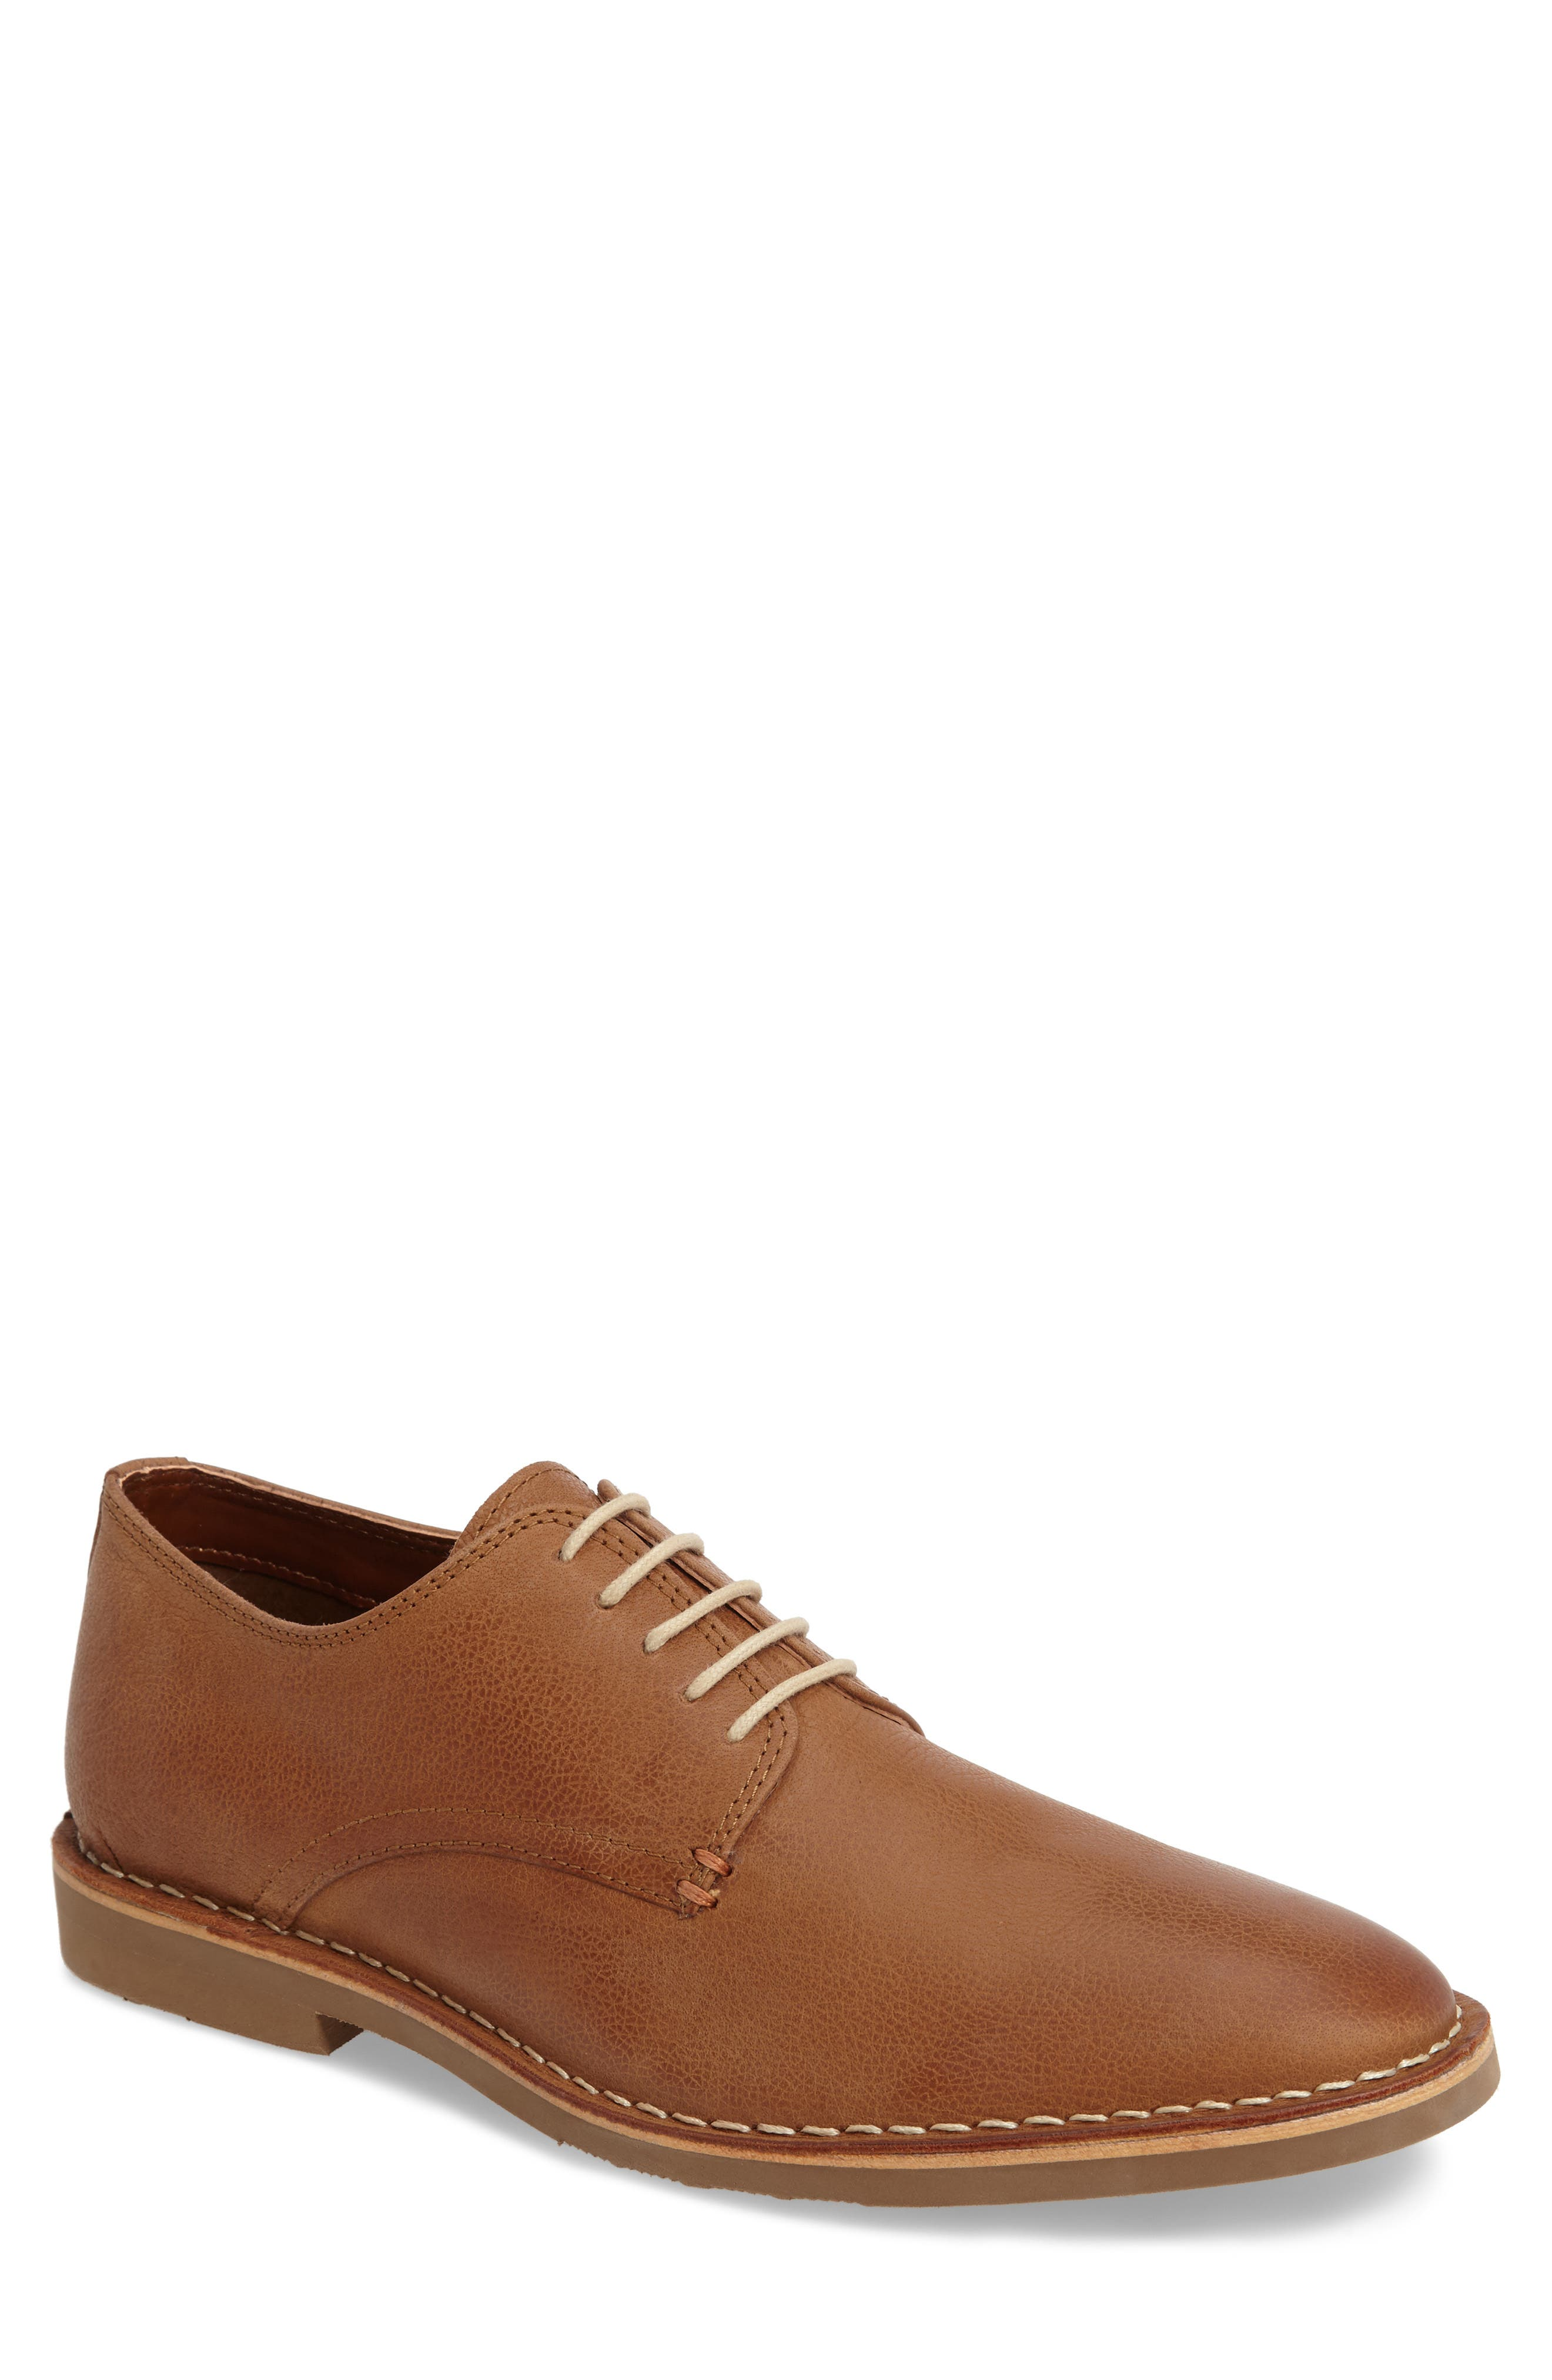 Kenneth Cole New York En-Deer-ing Derby,                         Main,                         color, Tan Leather